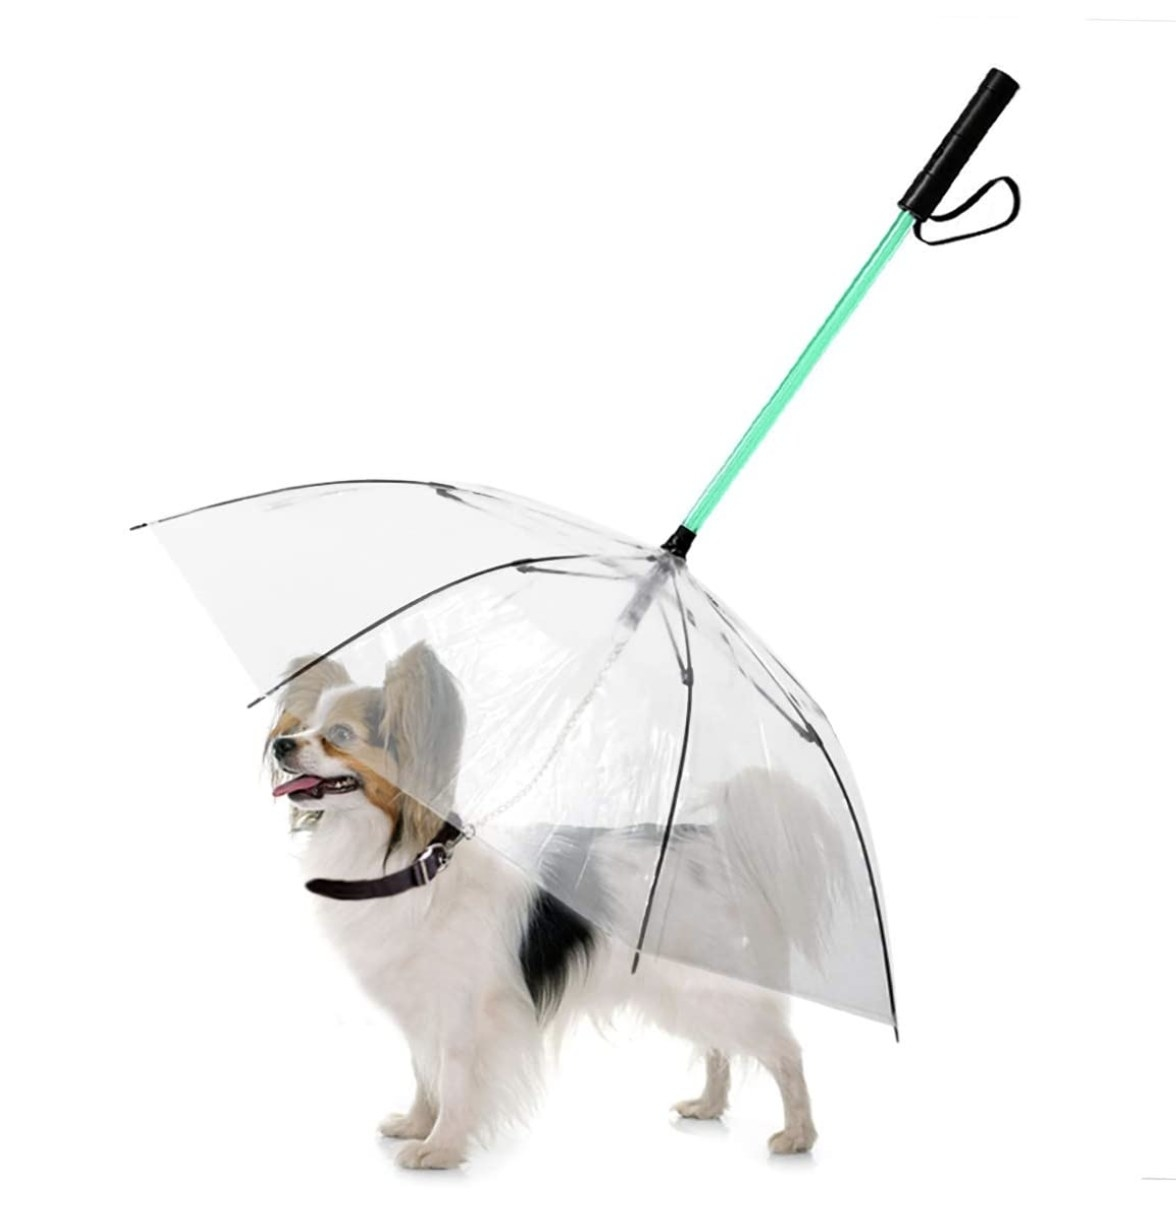 A dog with an umbrella over them